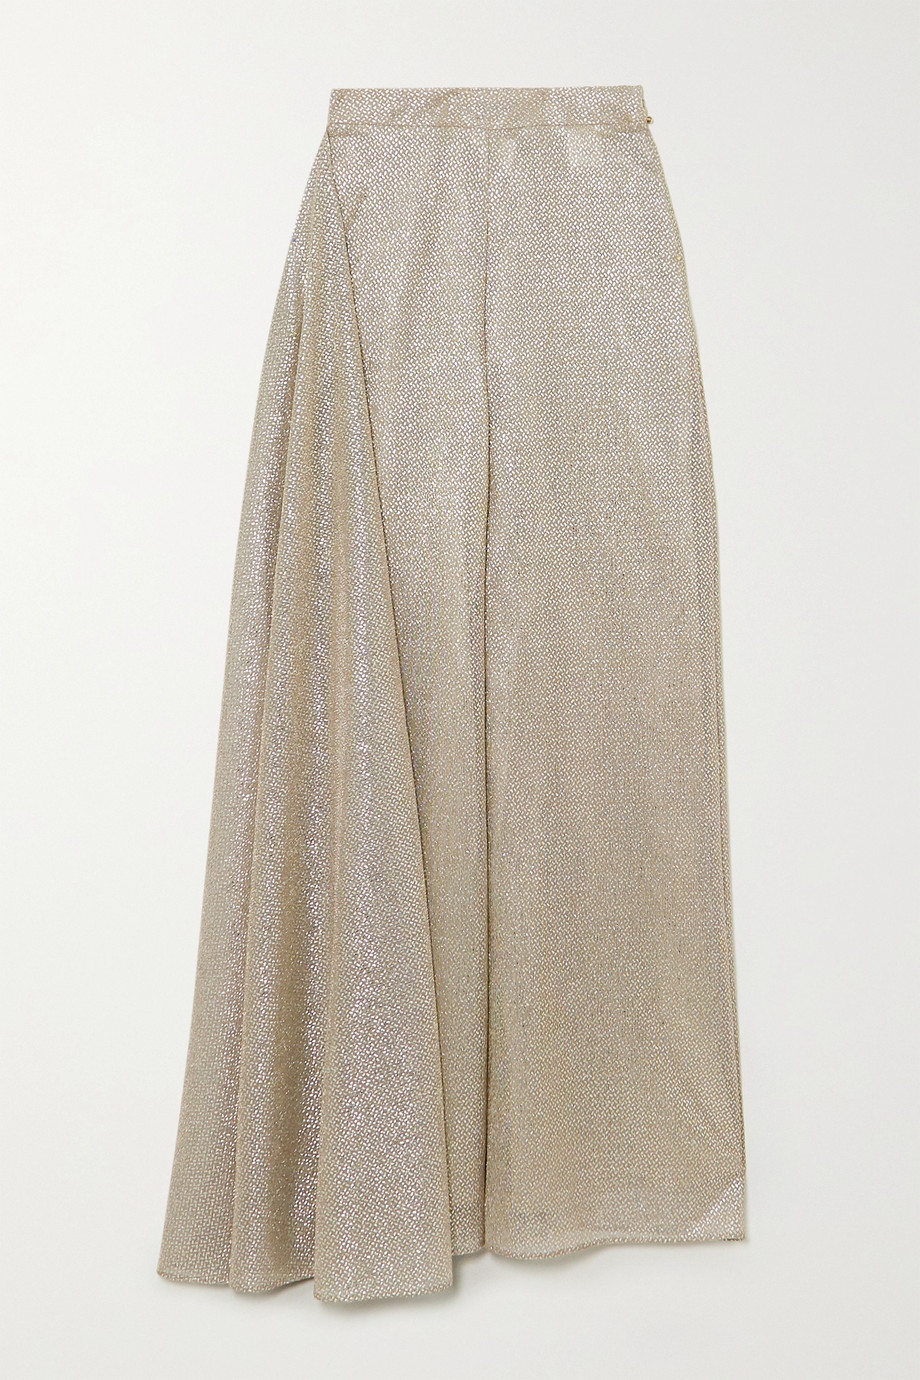 Talbot Runhof Kifty draped metallic voile wide-leg pants